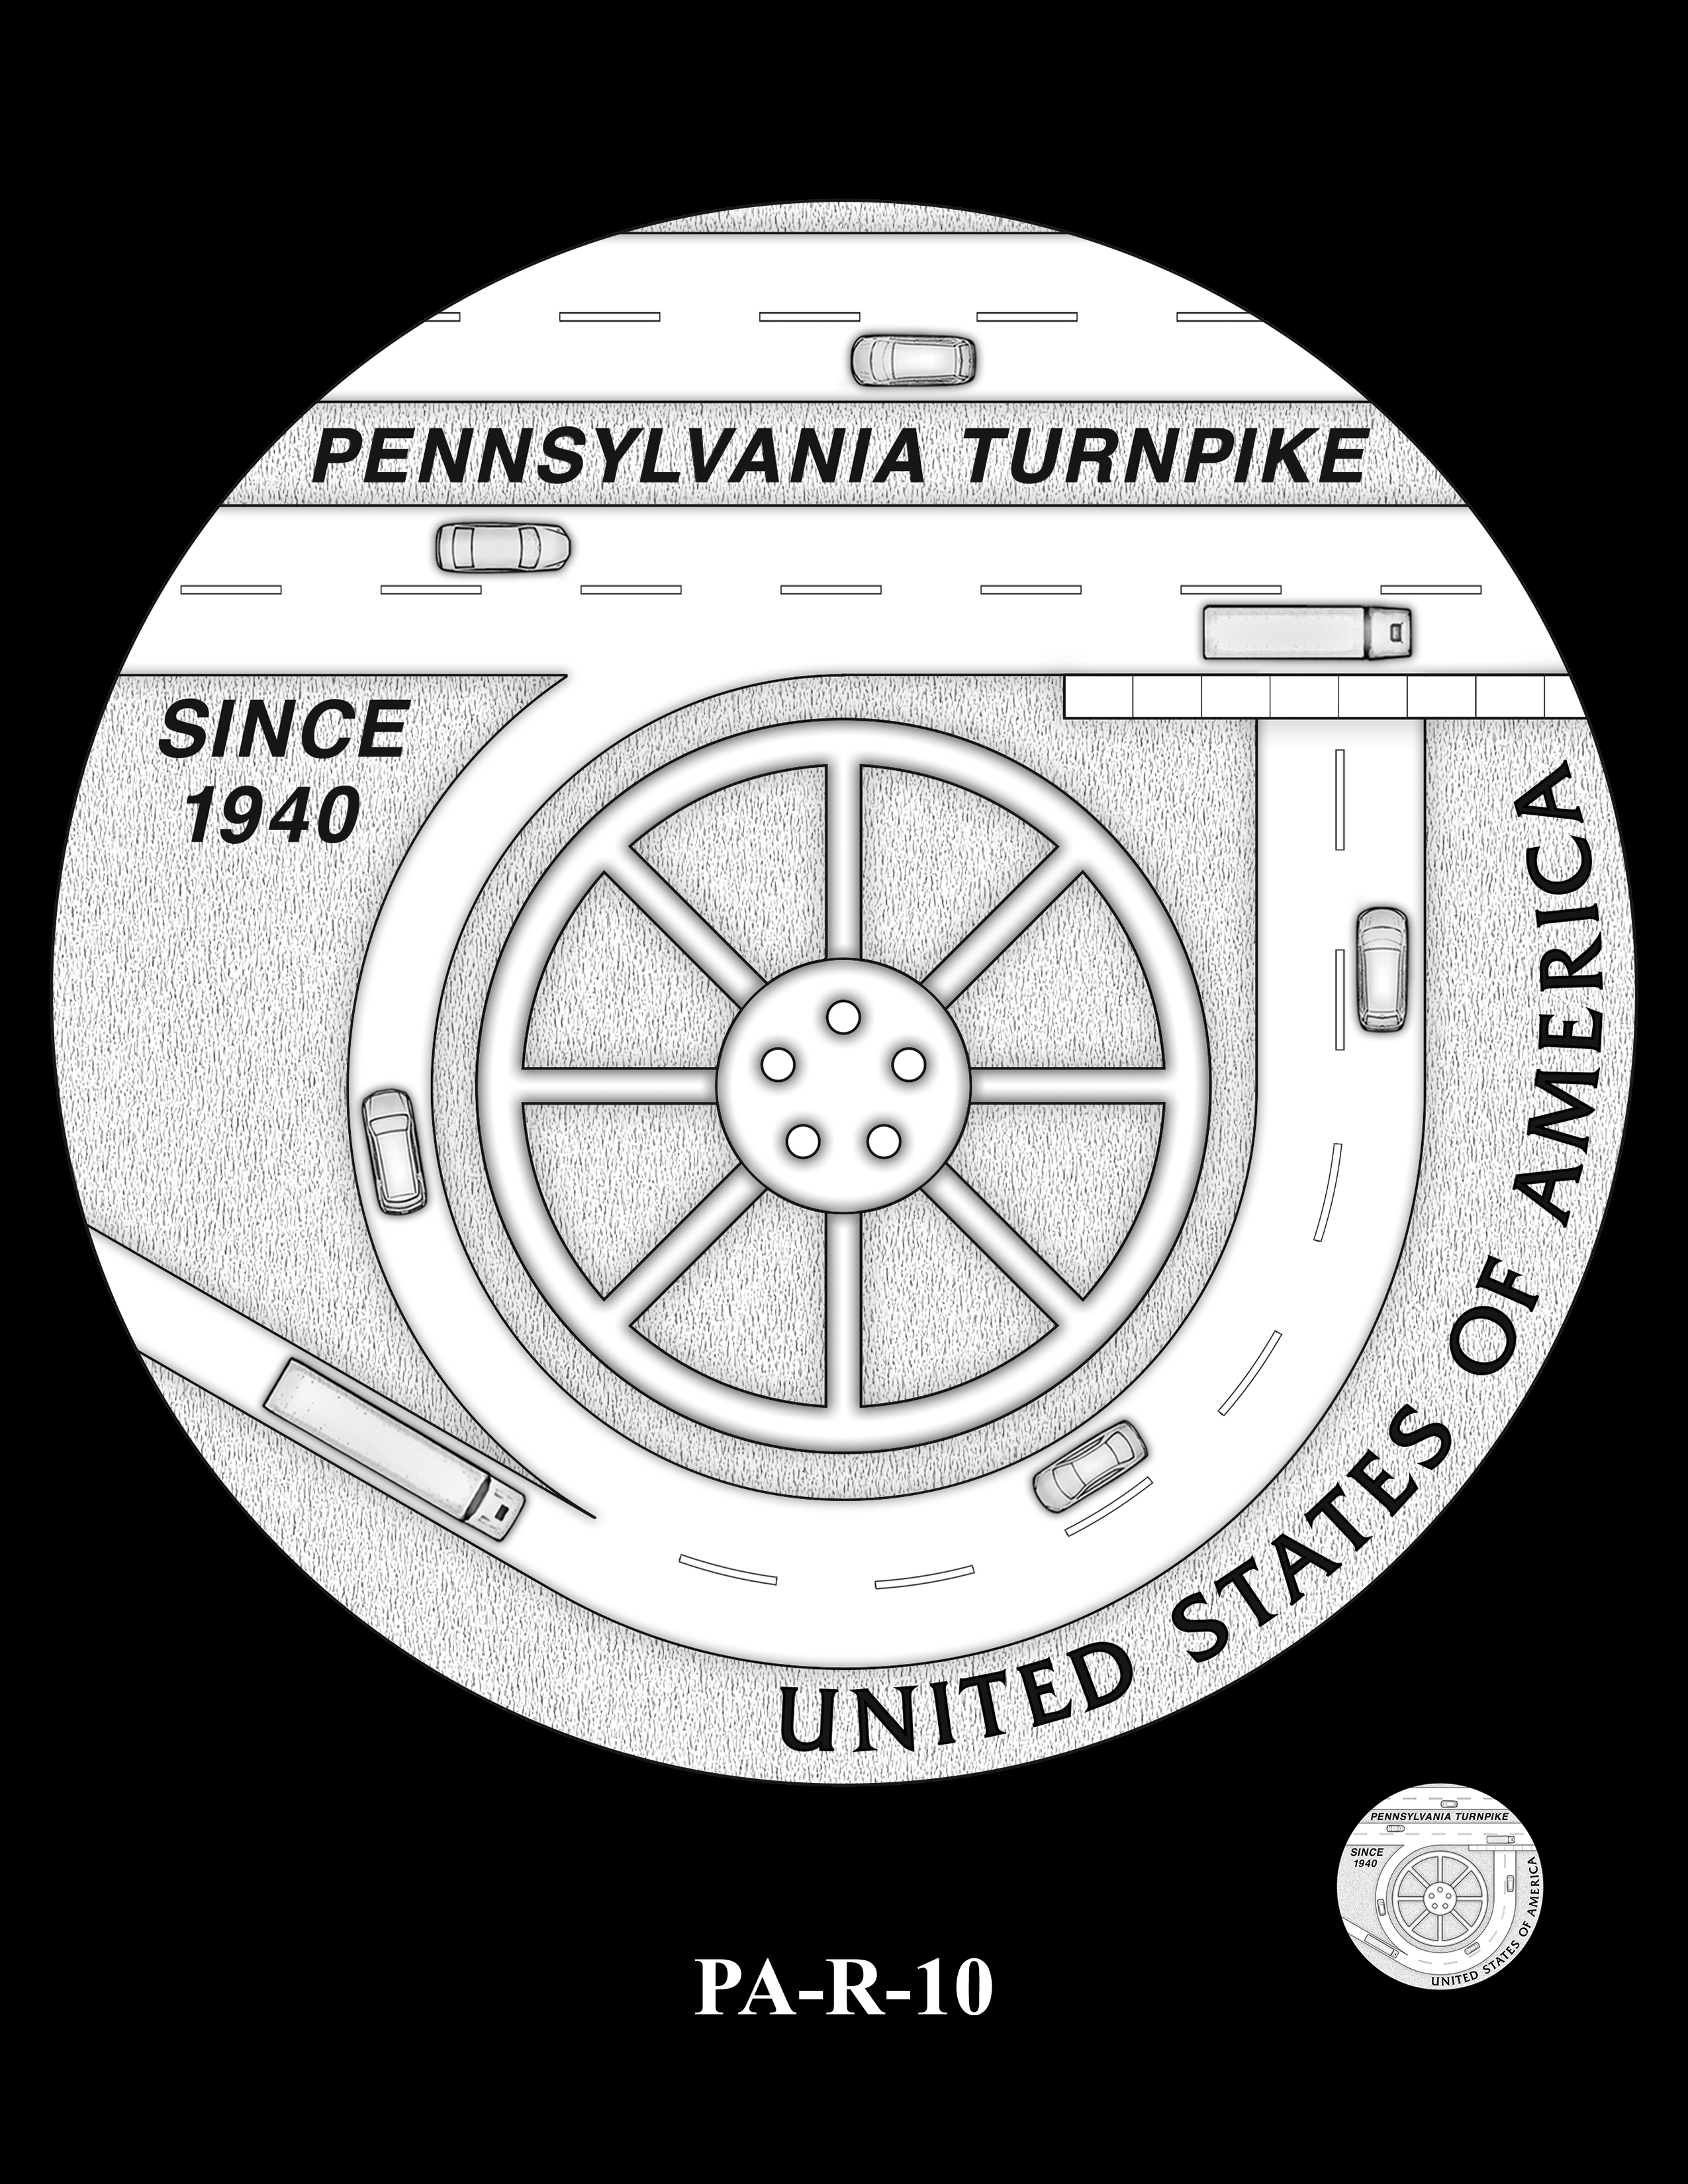 PA-R-10 -- 2019 American Innovation $1 Coin Program